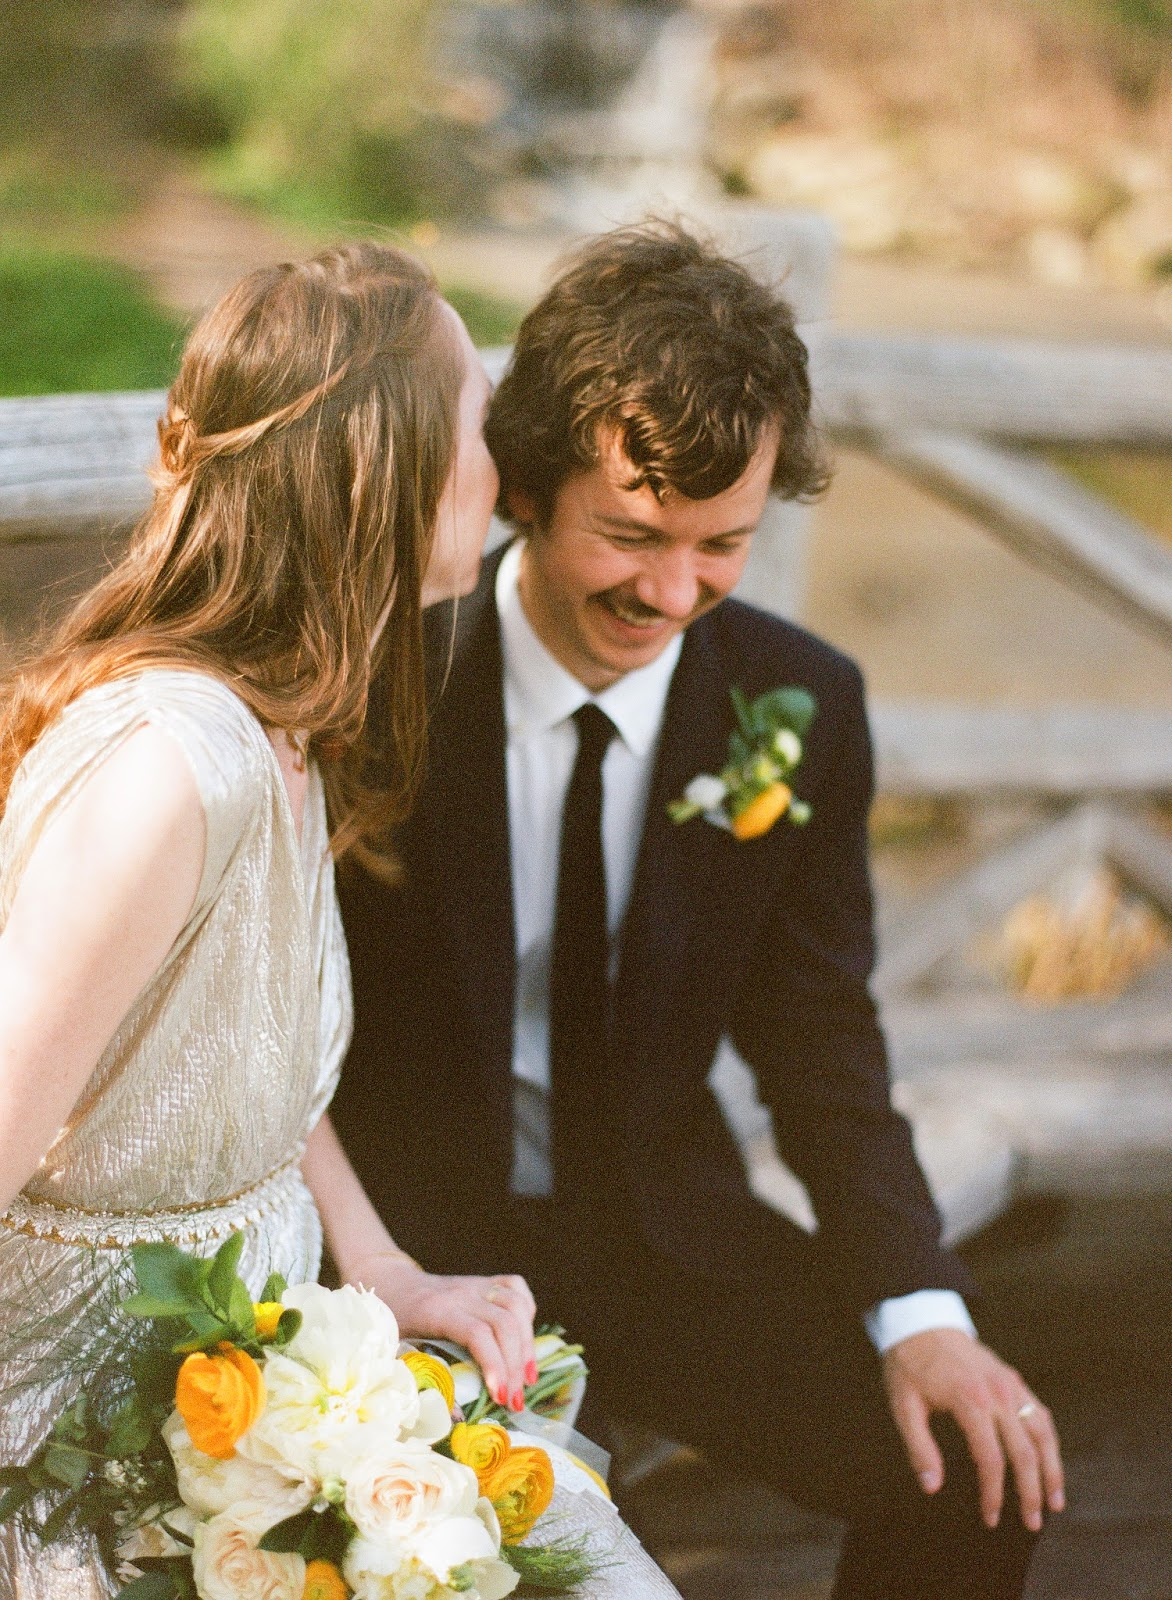 intimate moment between bride and groom in prospect park, brooklyn, new york with yellow ranunculus and white peony spring bouquet and boutonniere